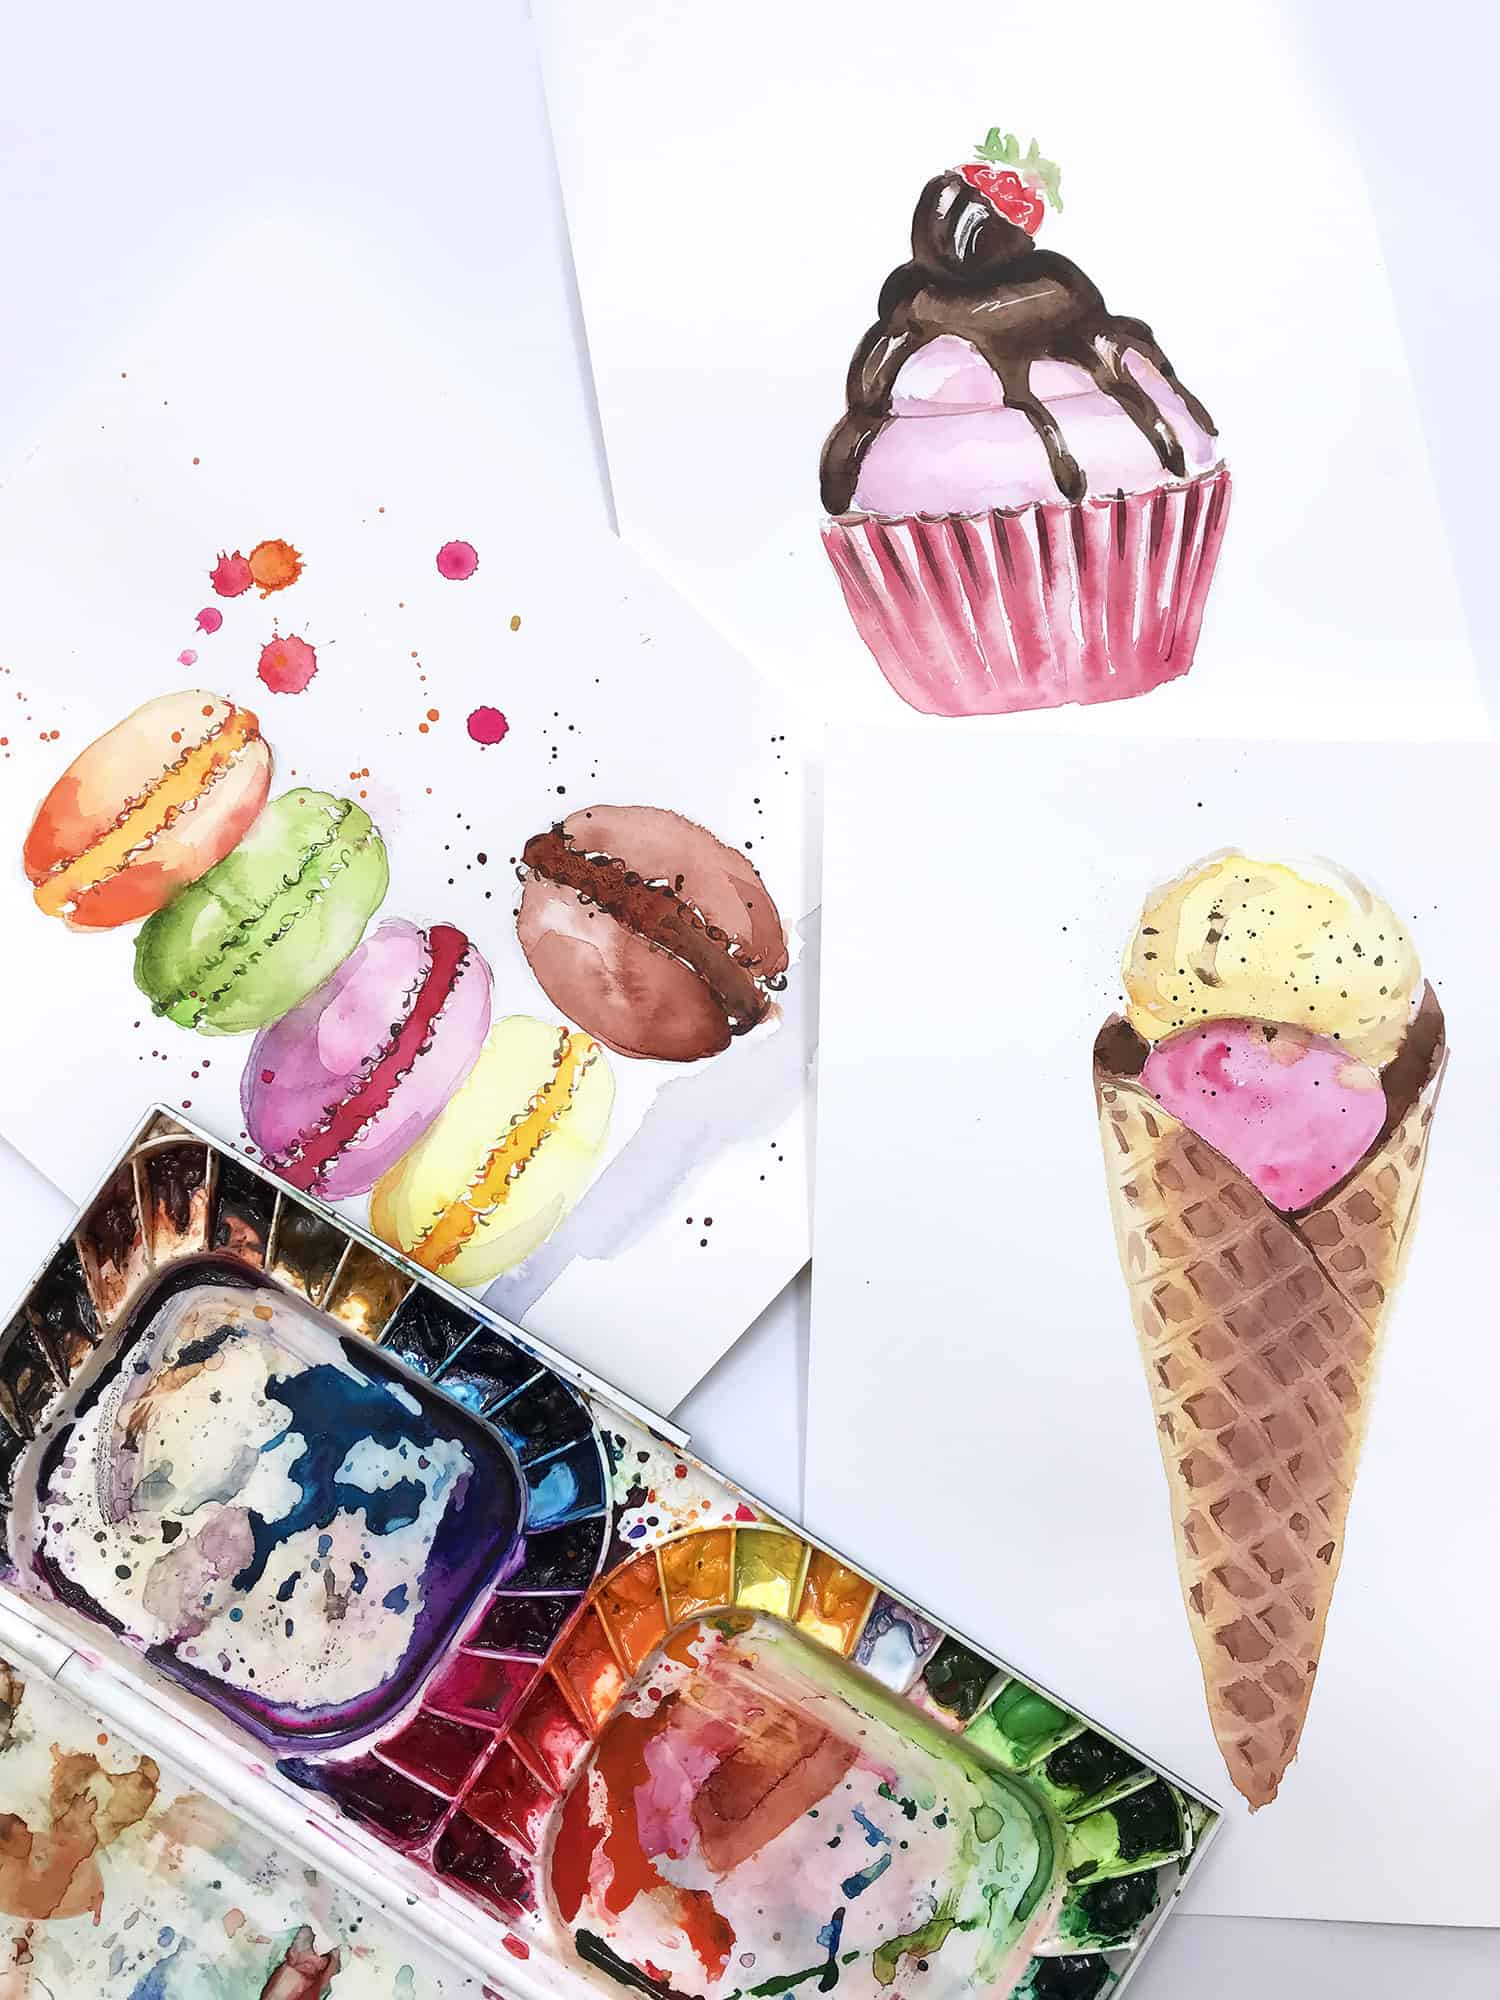 Watercolor for Beginners. Watercolor Tips for Beginners. How to paint Ice Cream cone with Watercolor